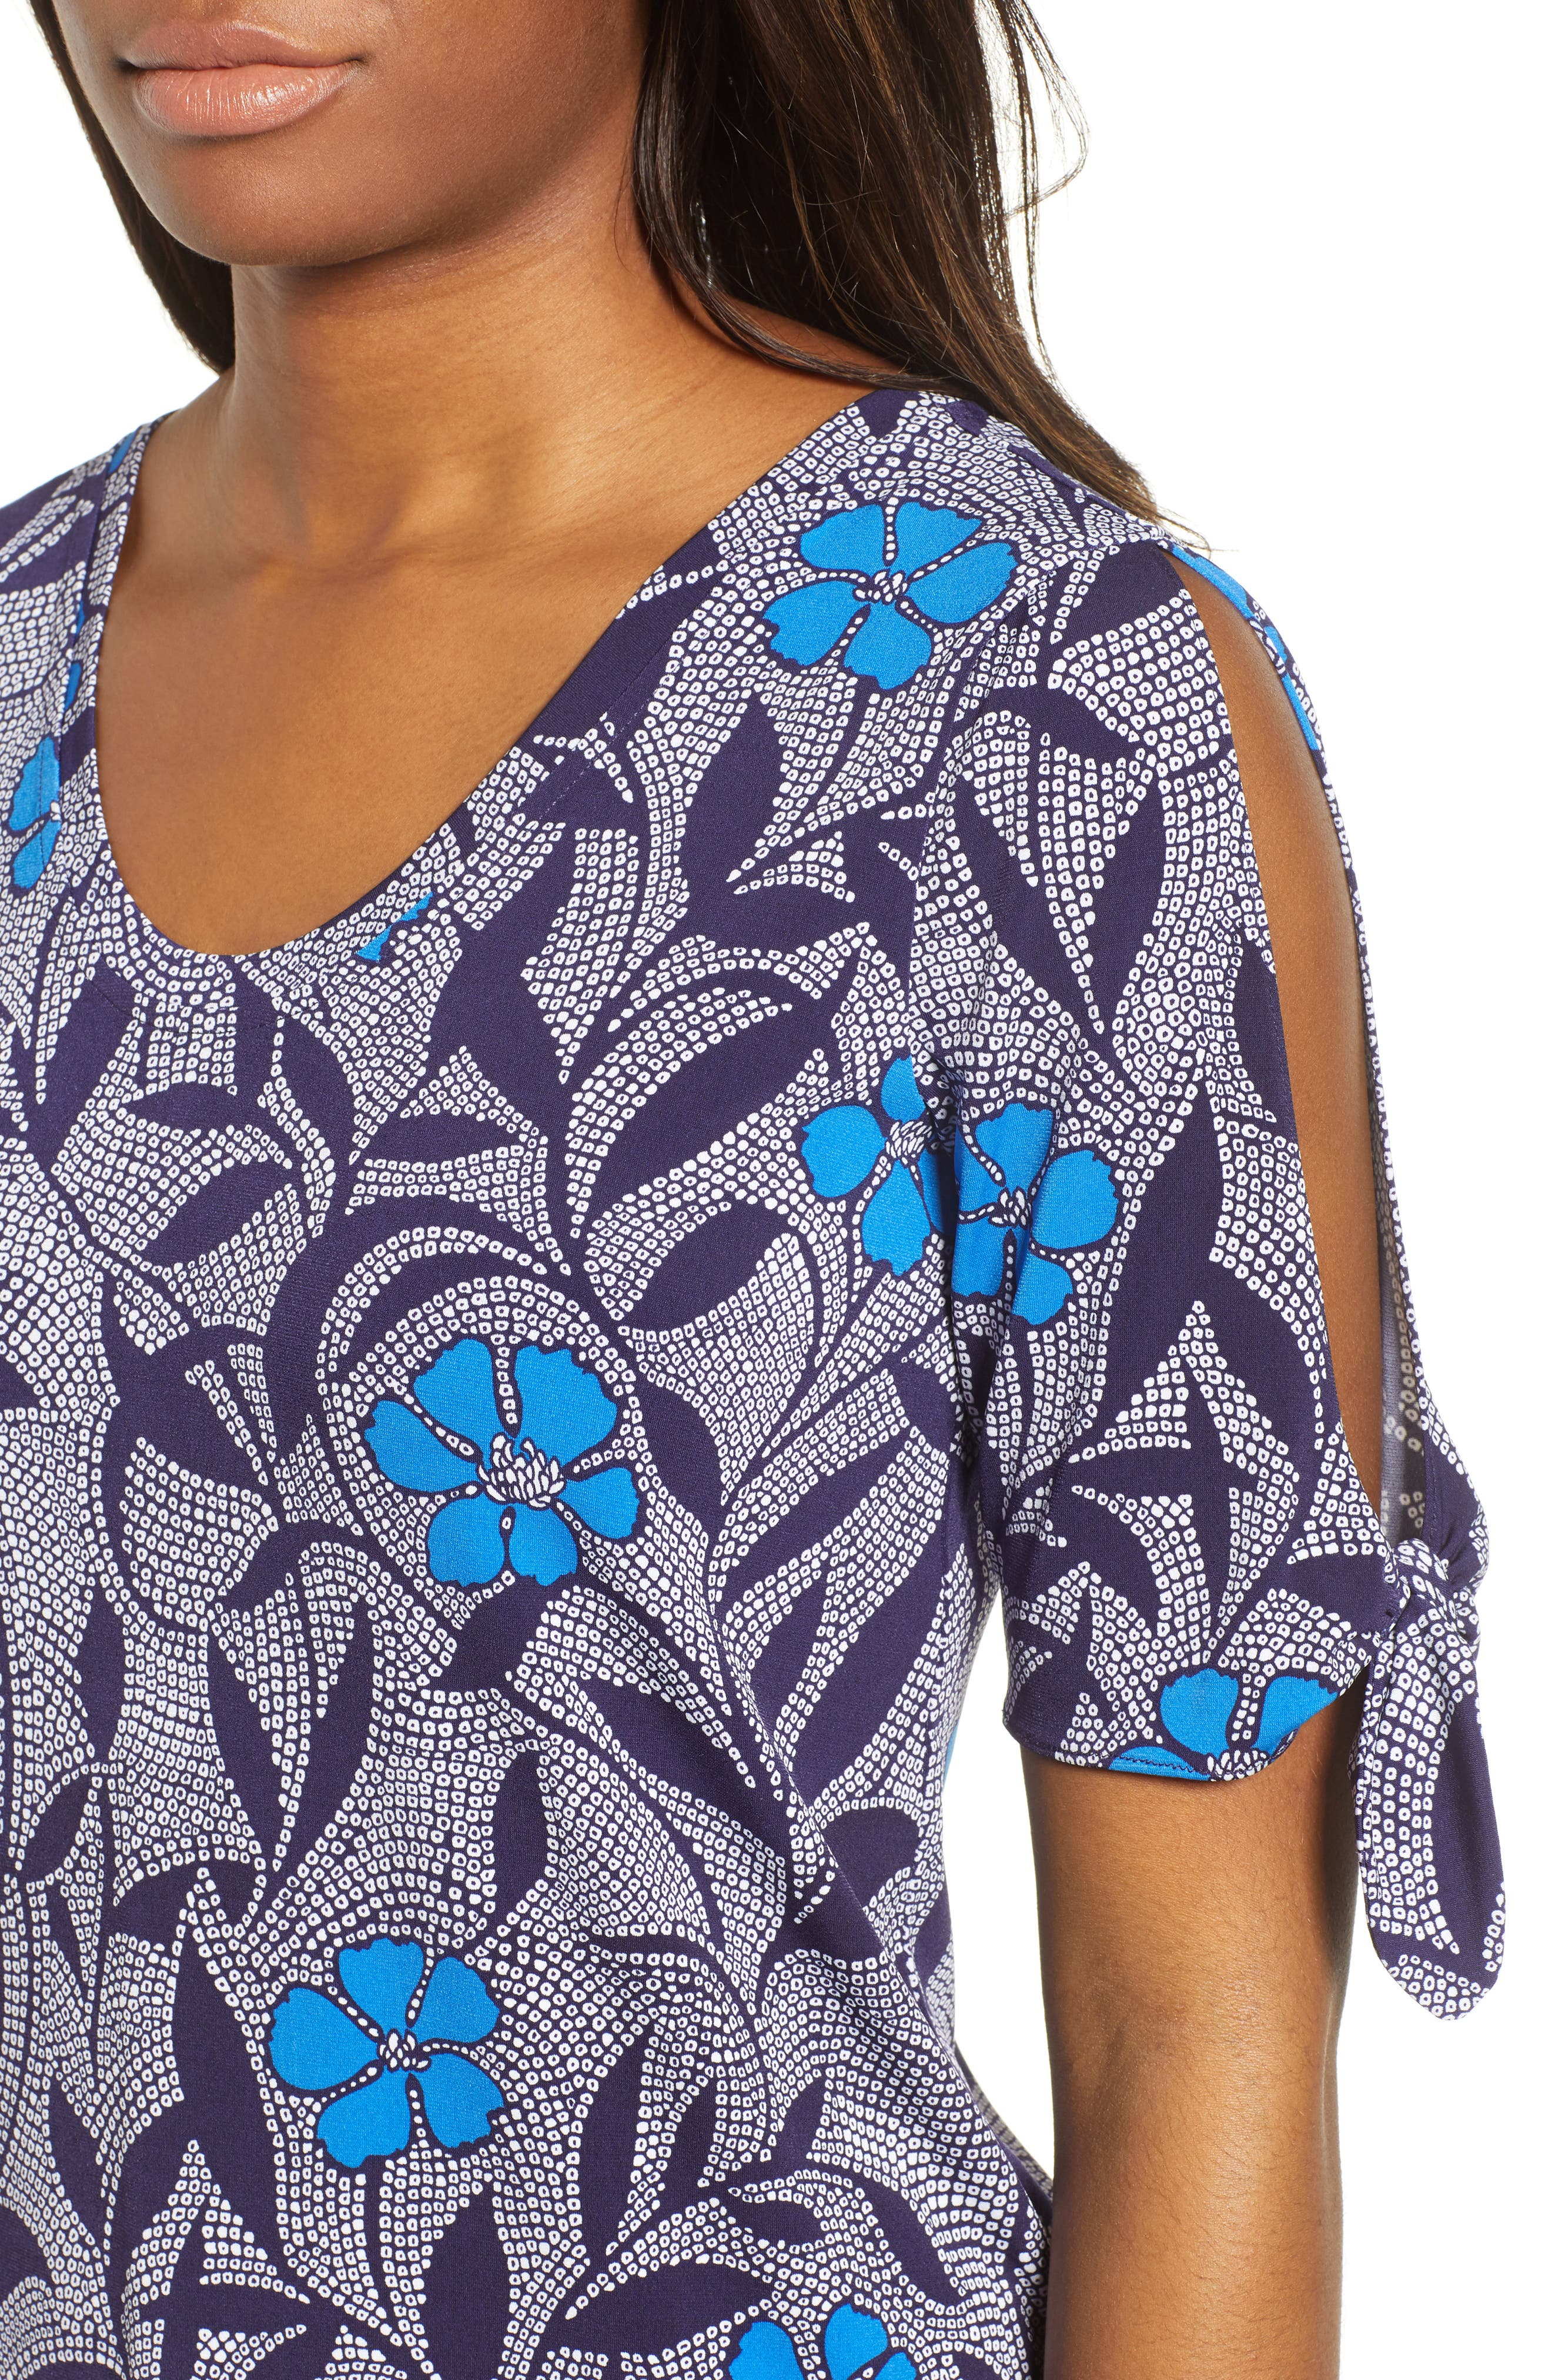 Pacific Bloom Top,                             Alternate thumbnail 4, color,                             Evening Navy